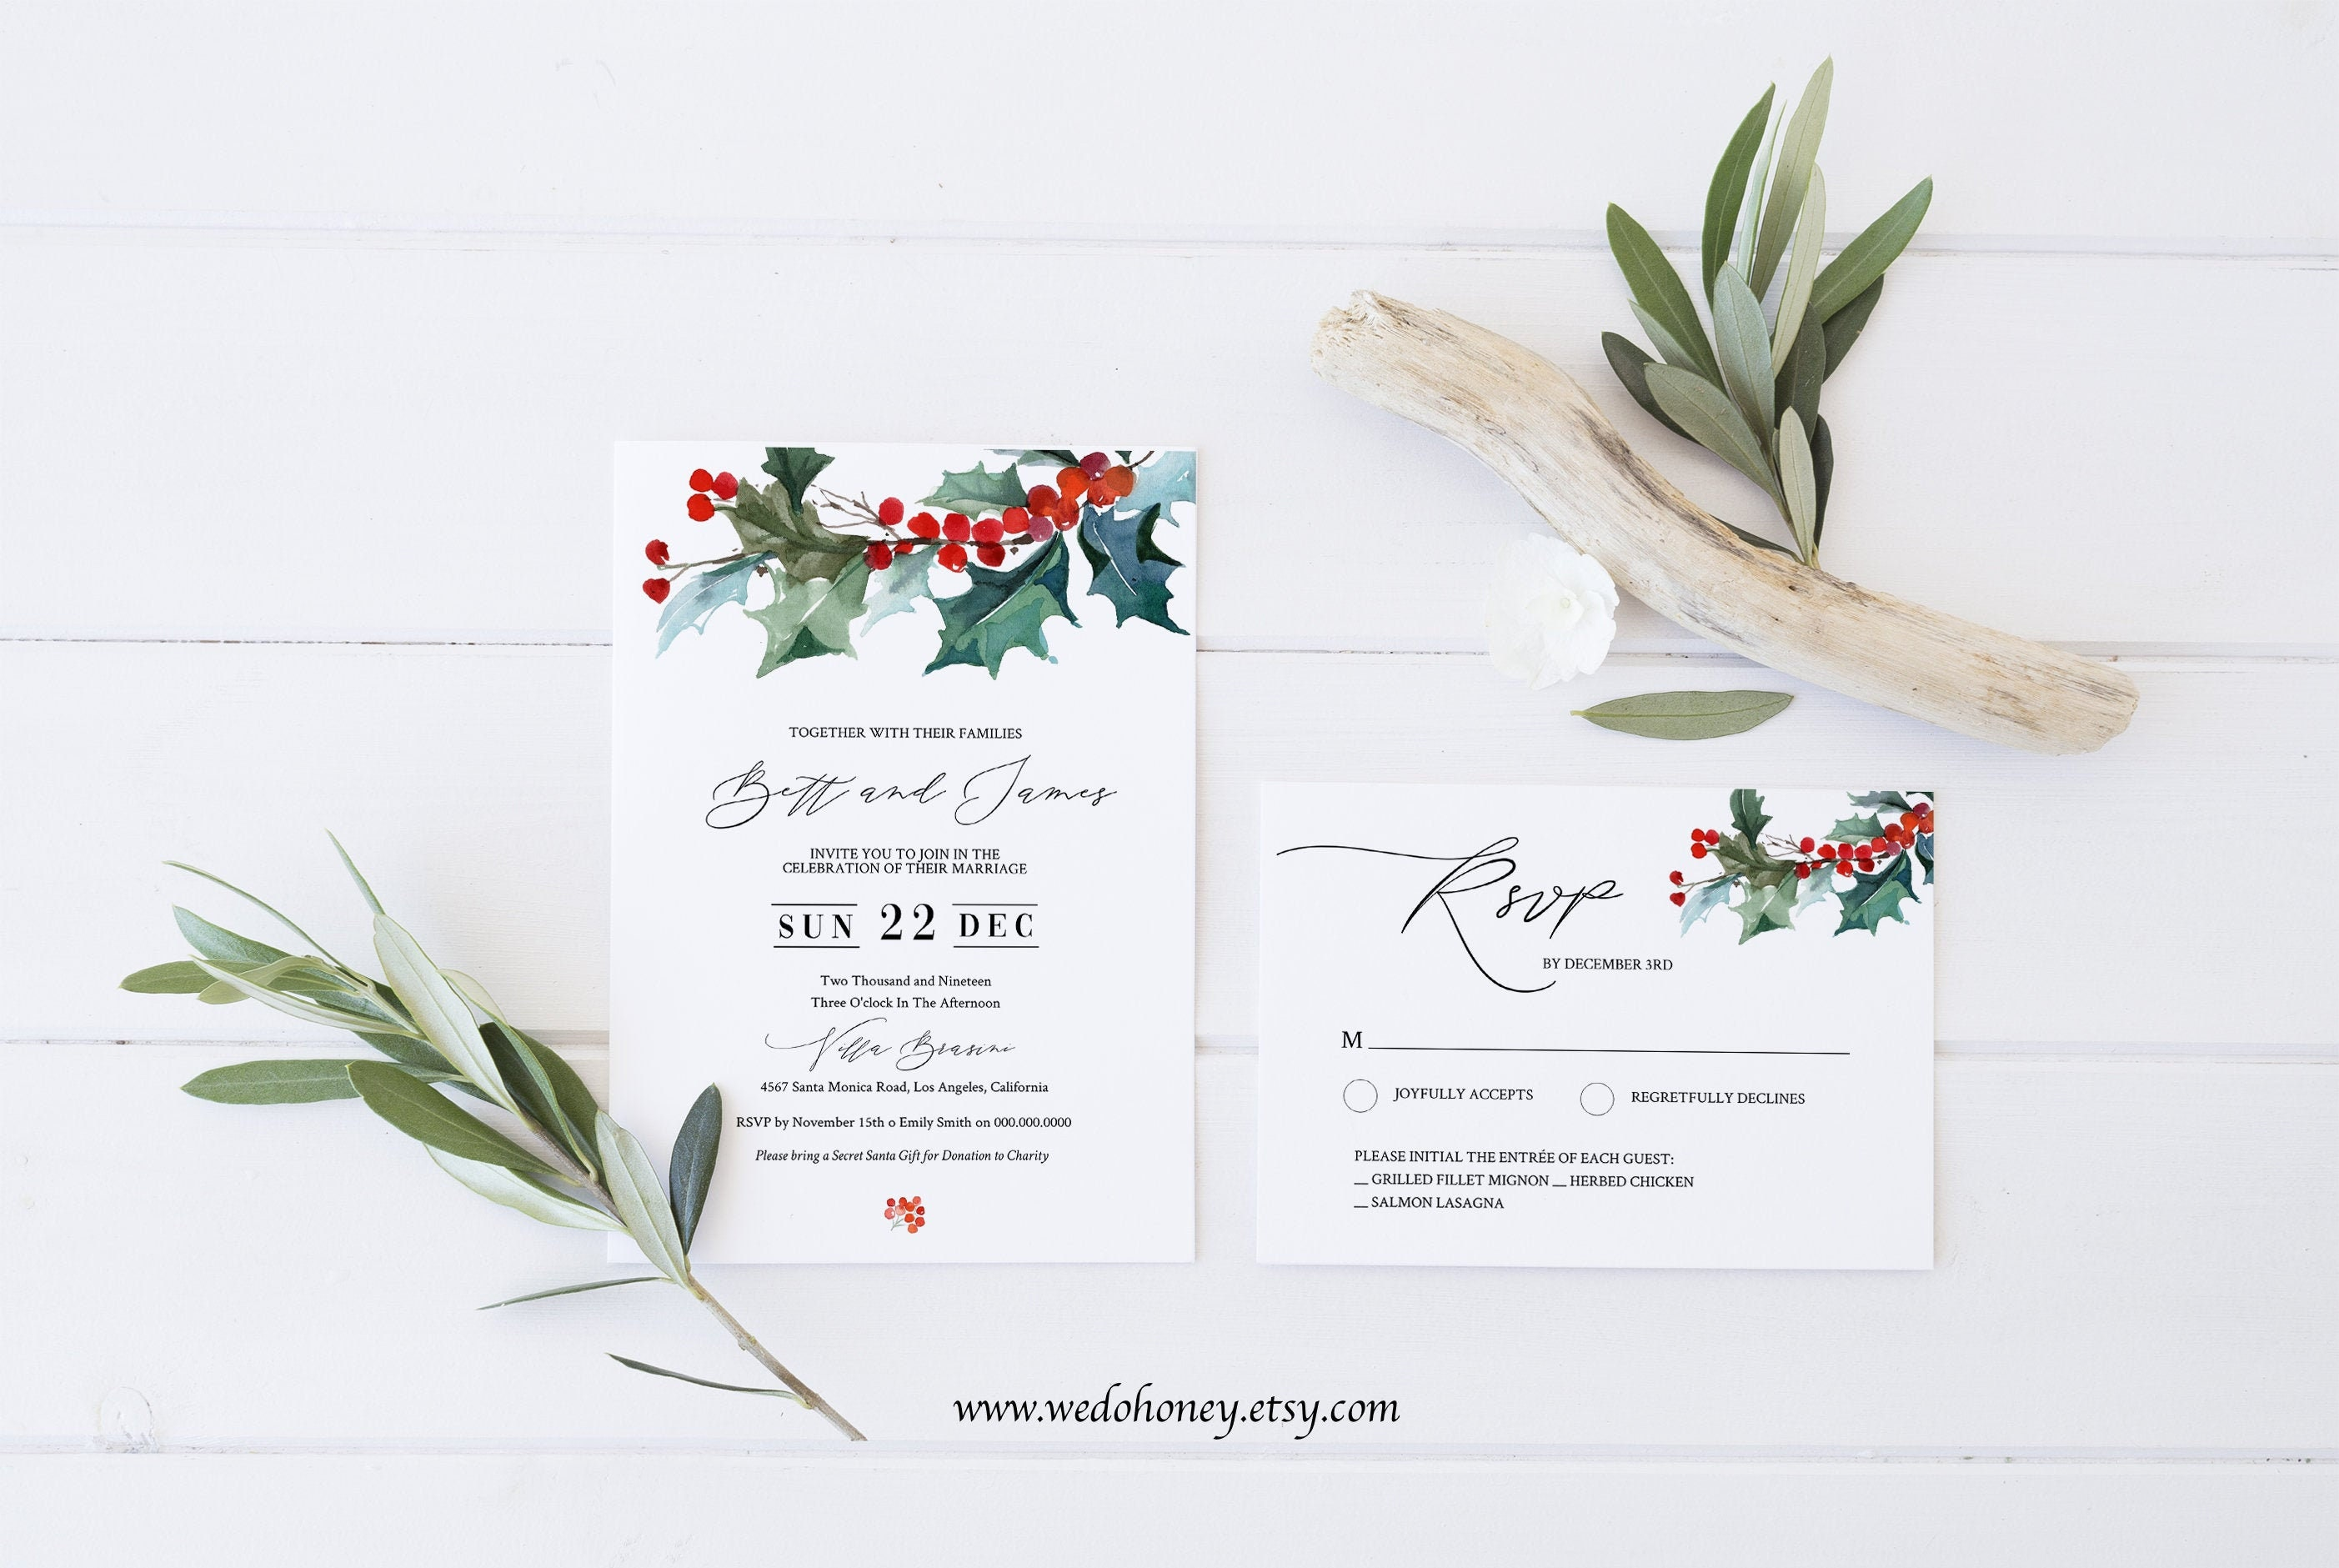 Winter Wedding Invitation Suite, Editable Template, Rustic Holiday Foliage Invitation, RSVP and Details Card, Edit with Corjl